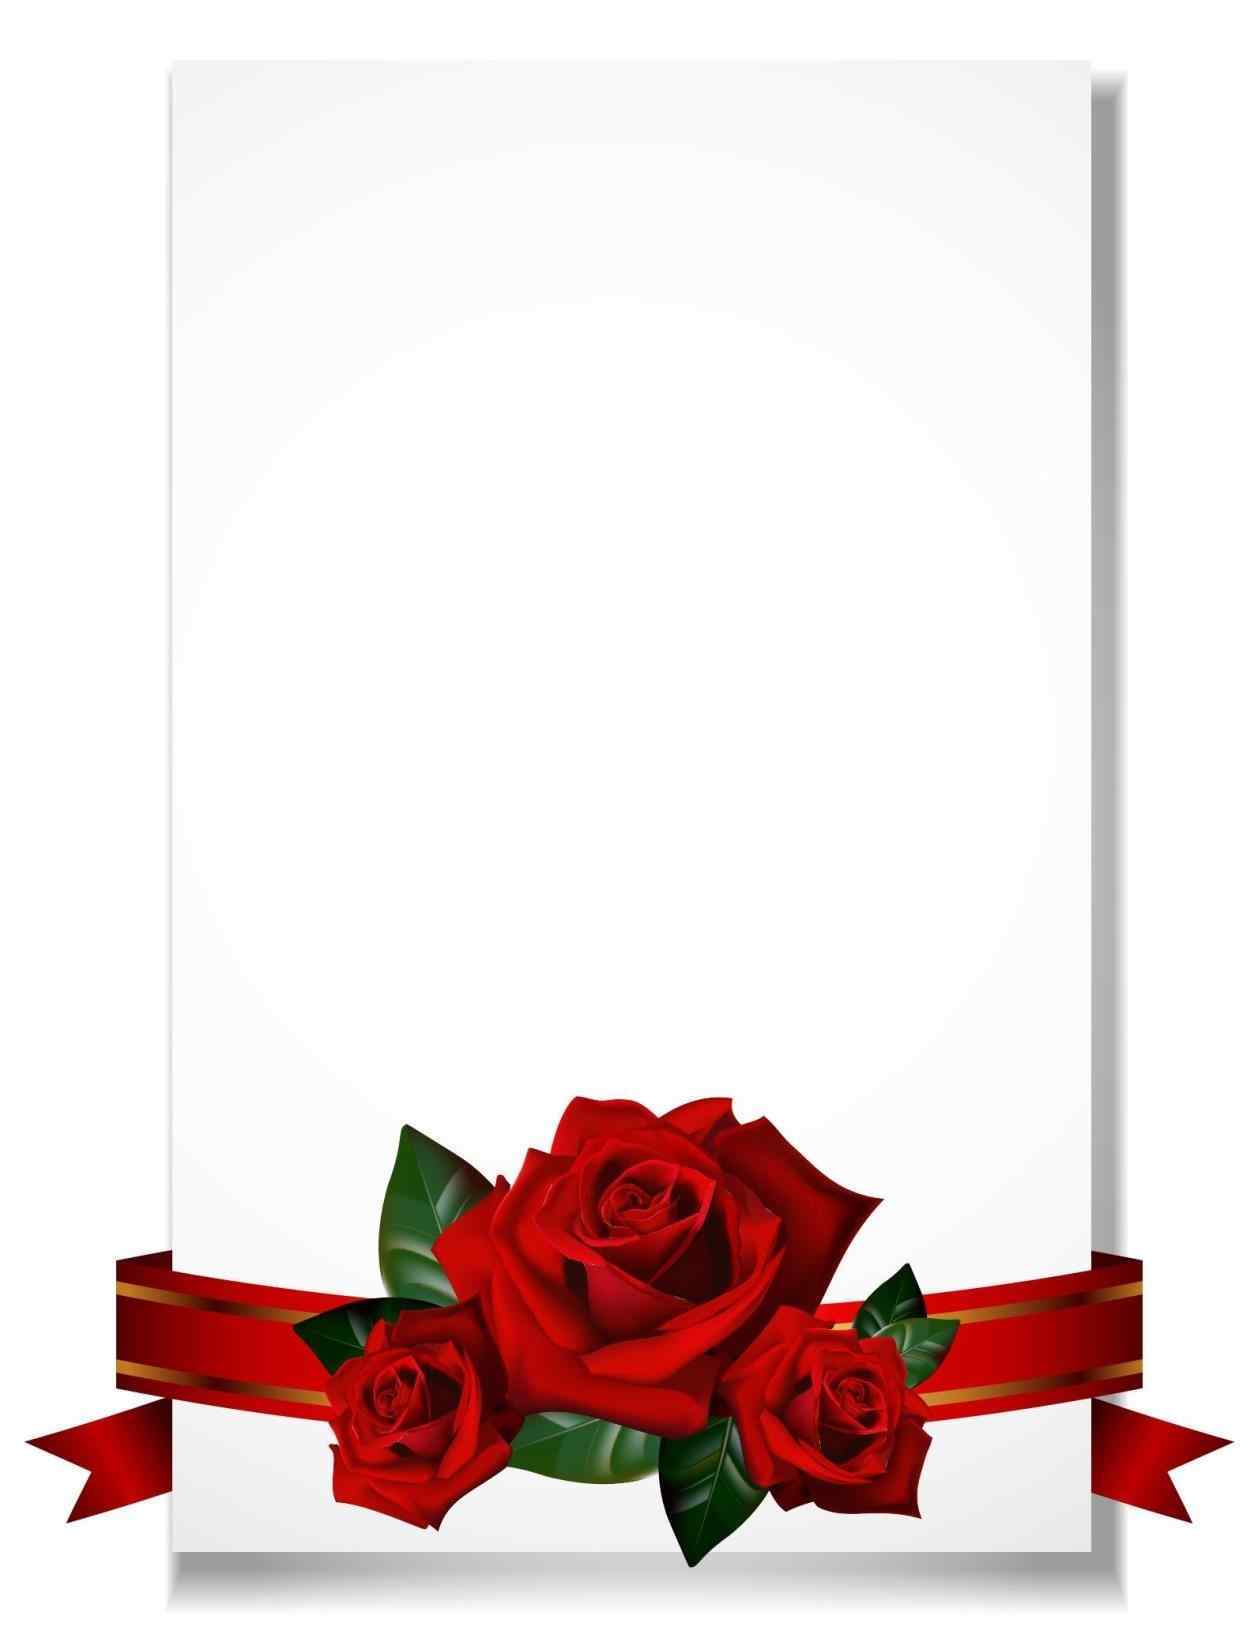 1258x1646 Rose Valentines Day Rose Borders Romantic Wedding Frame Background